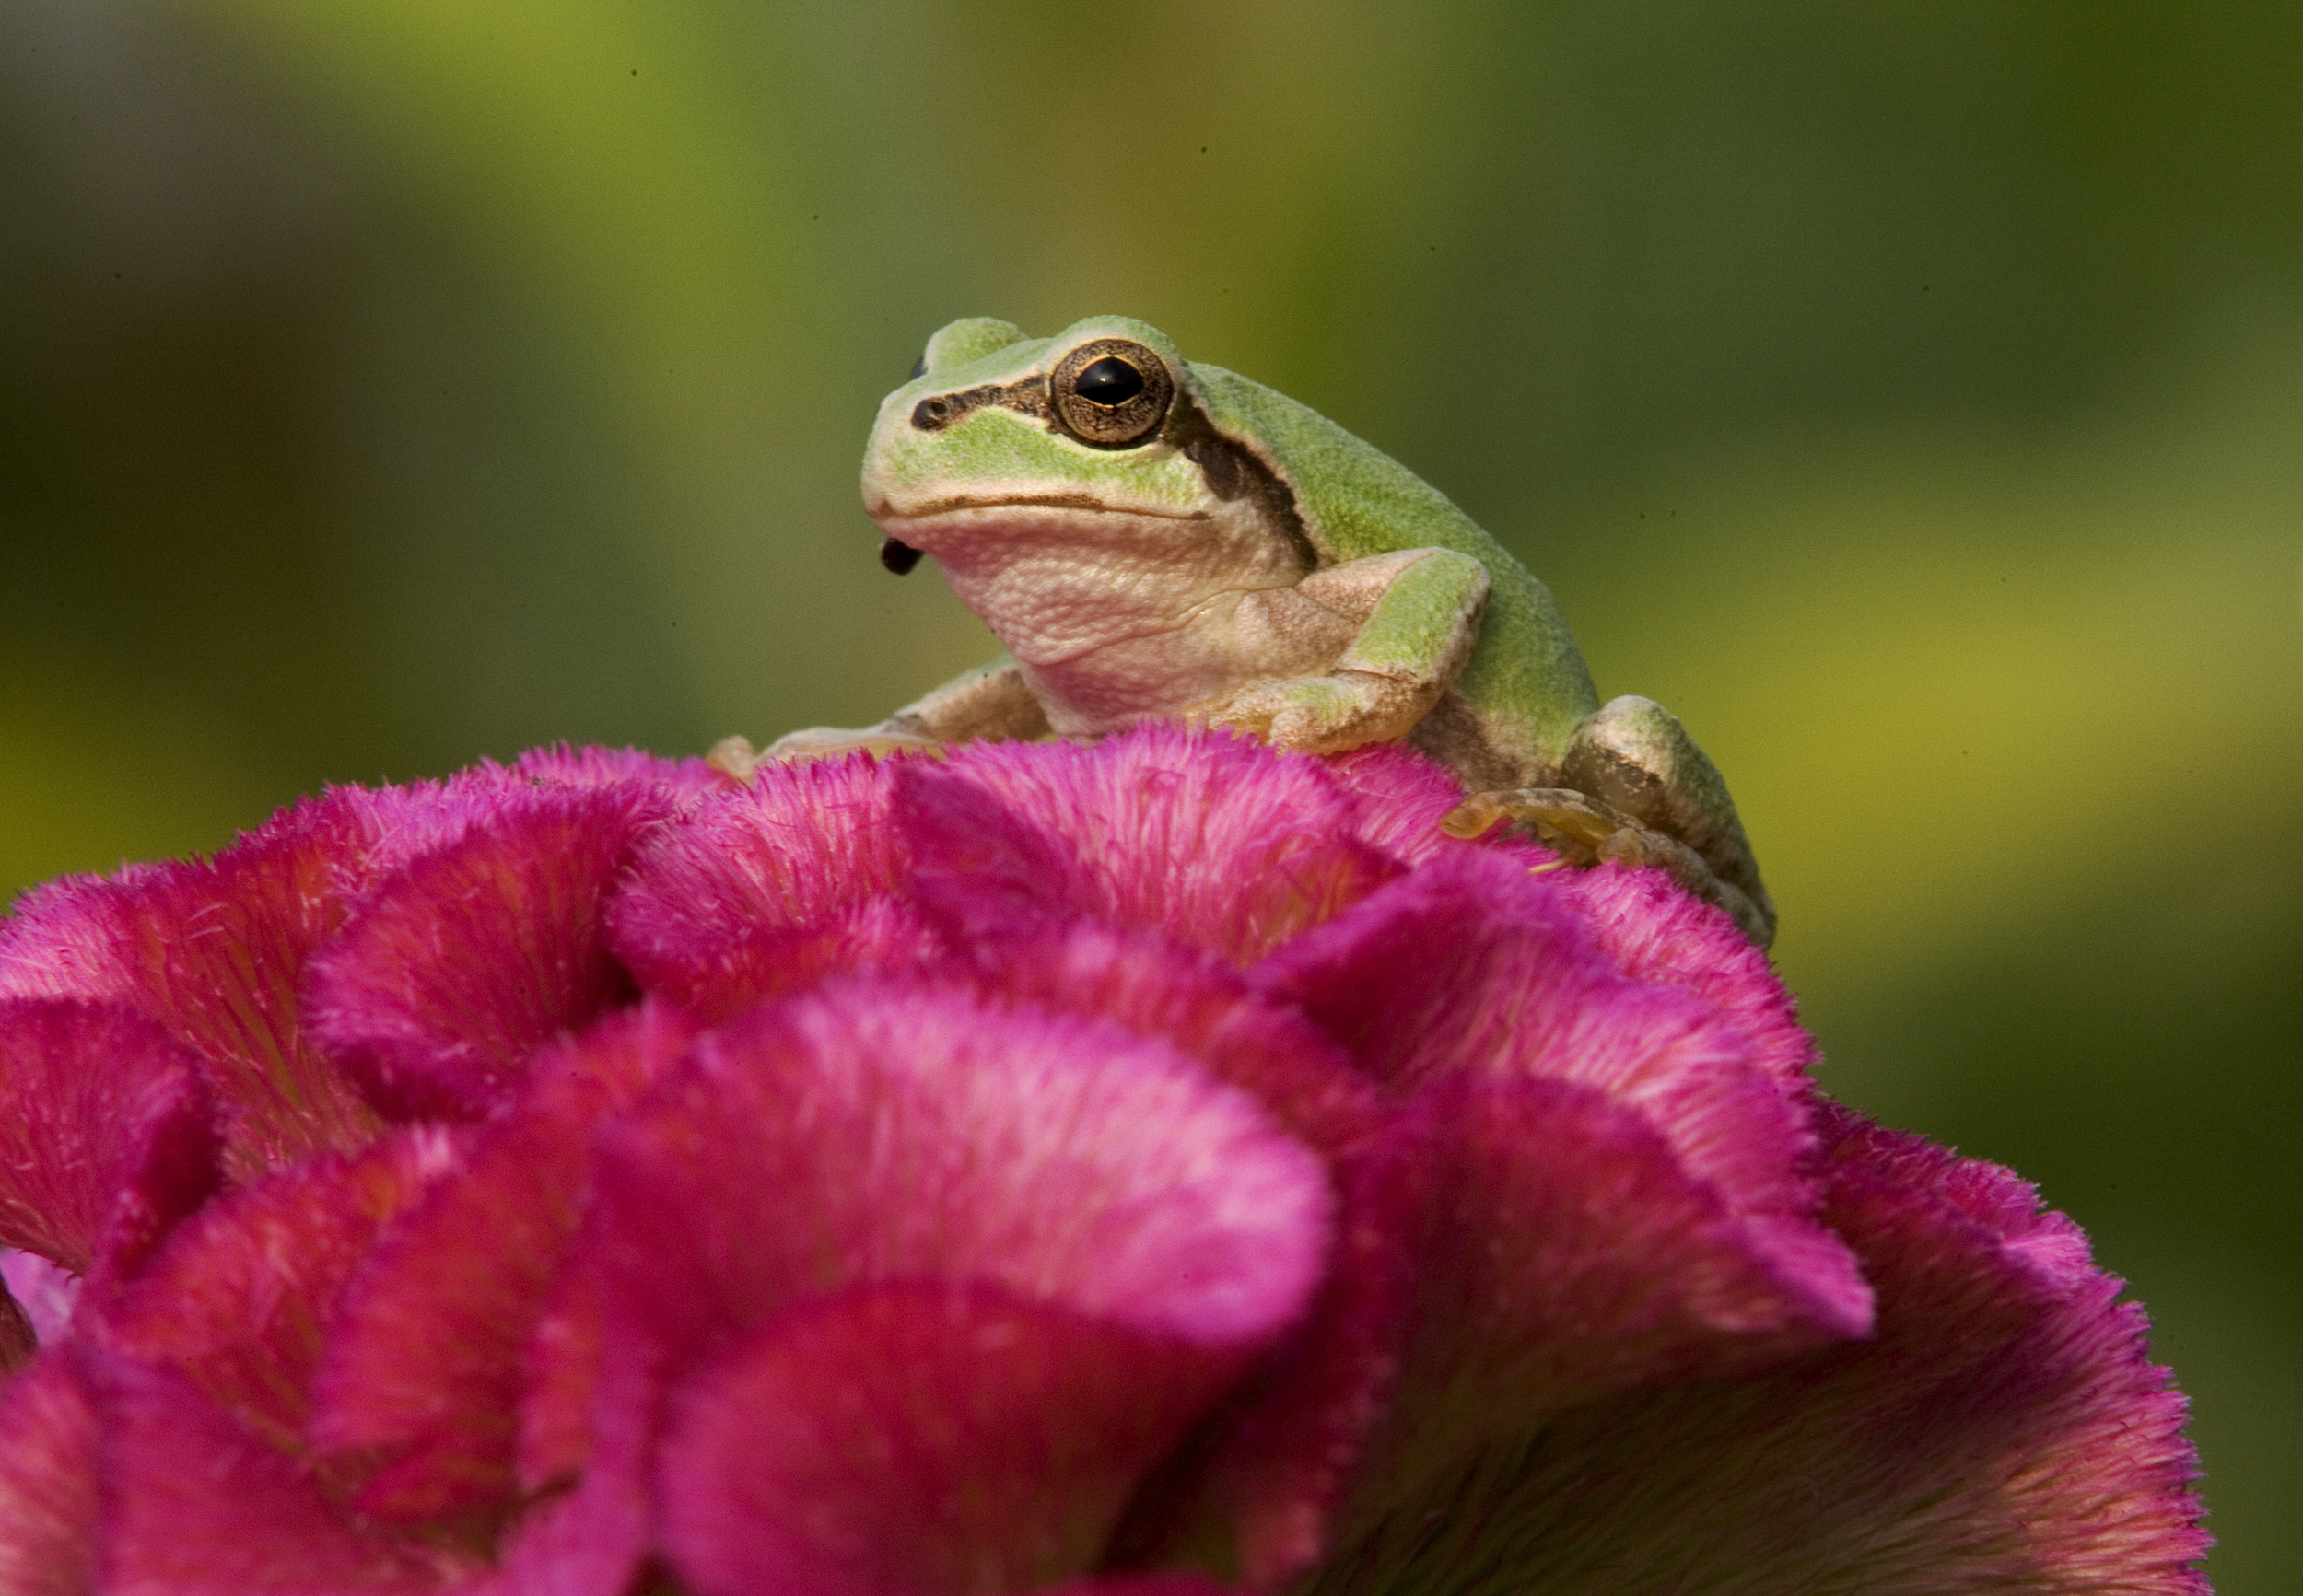 Horny Frogs and the Fungal Love Potion